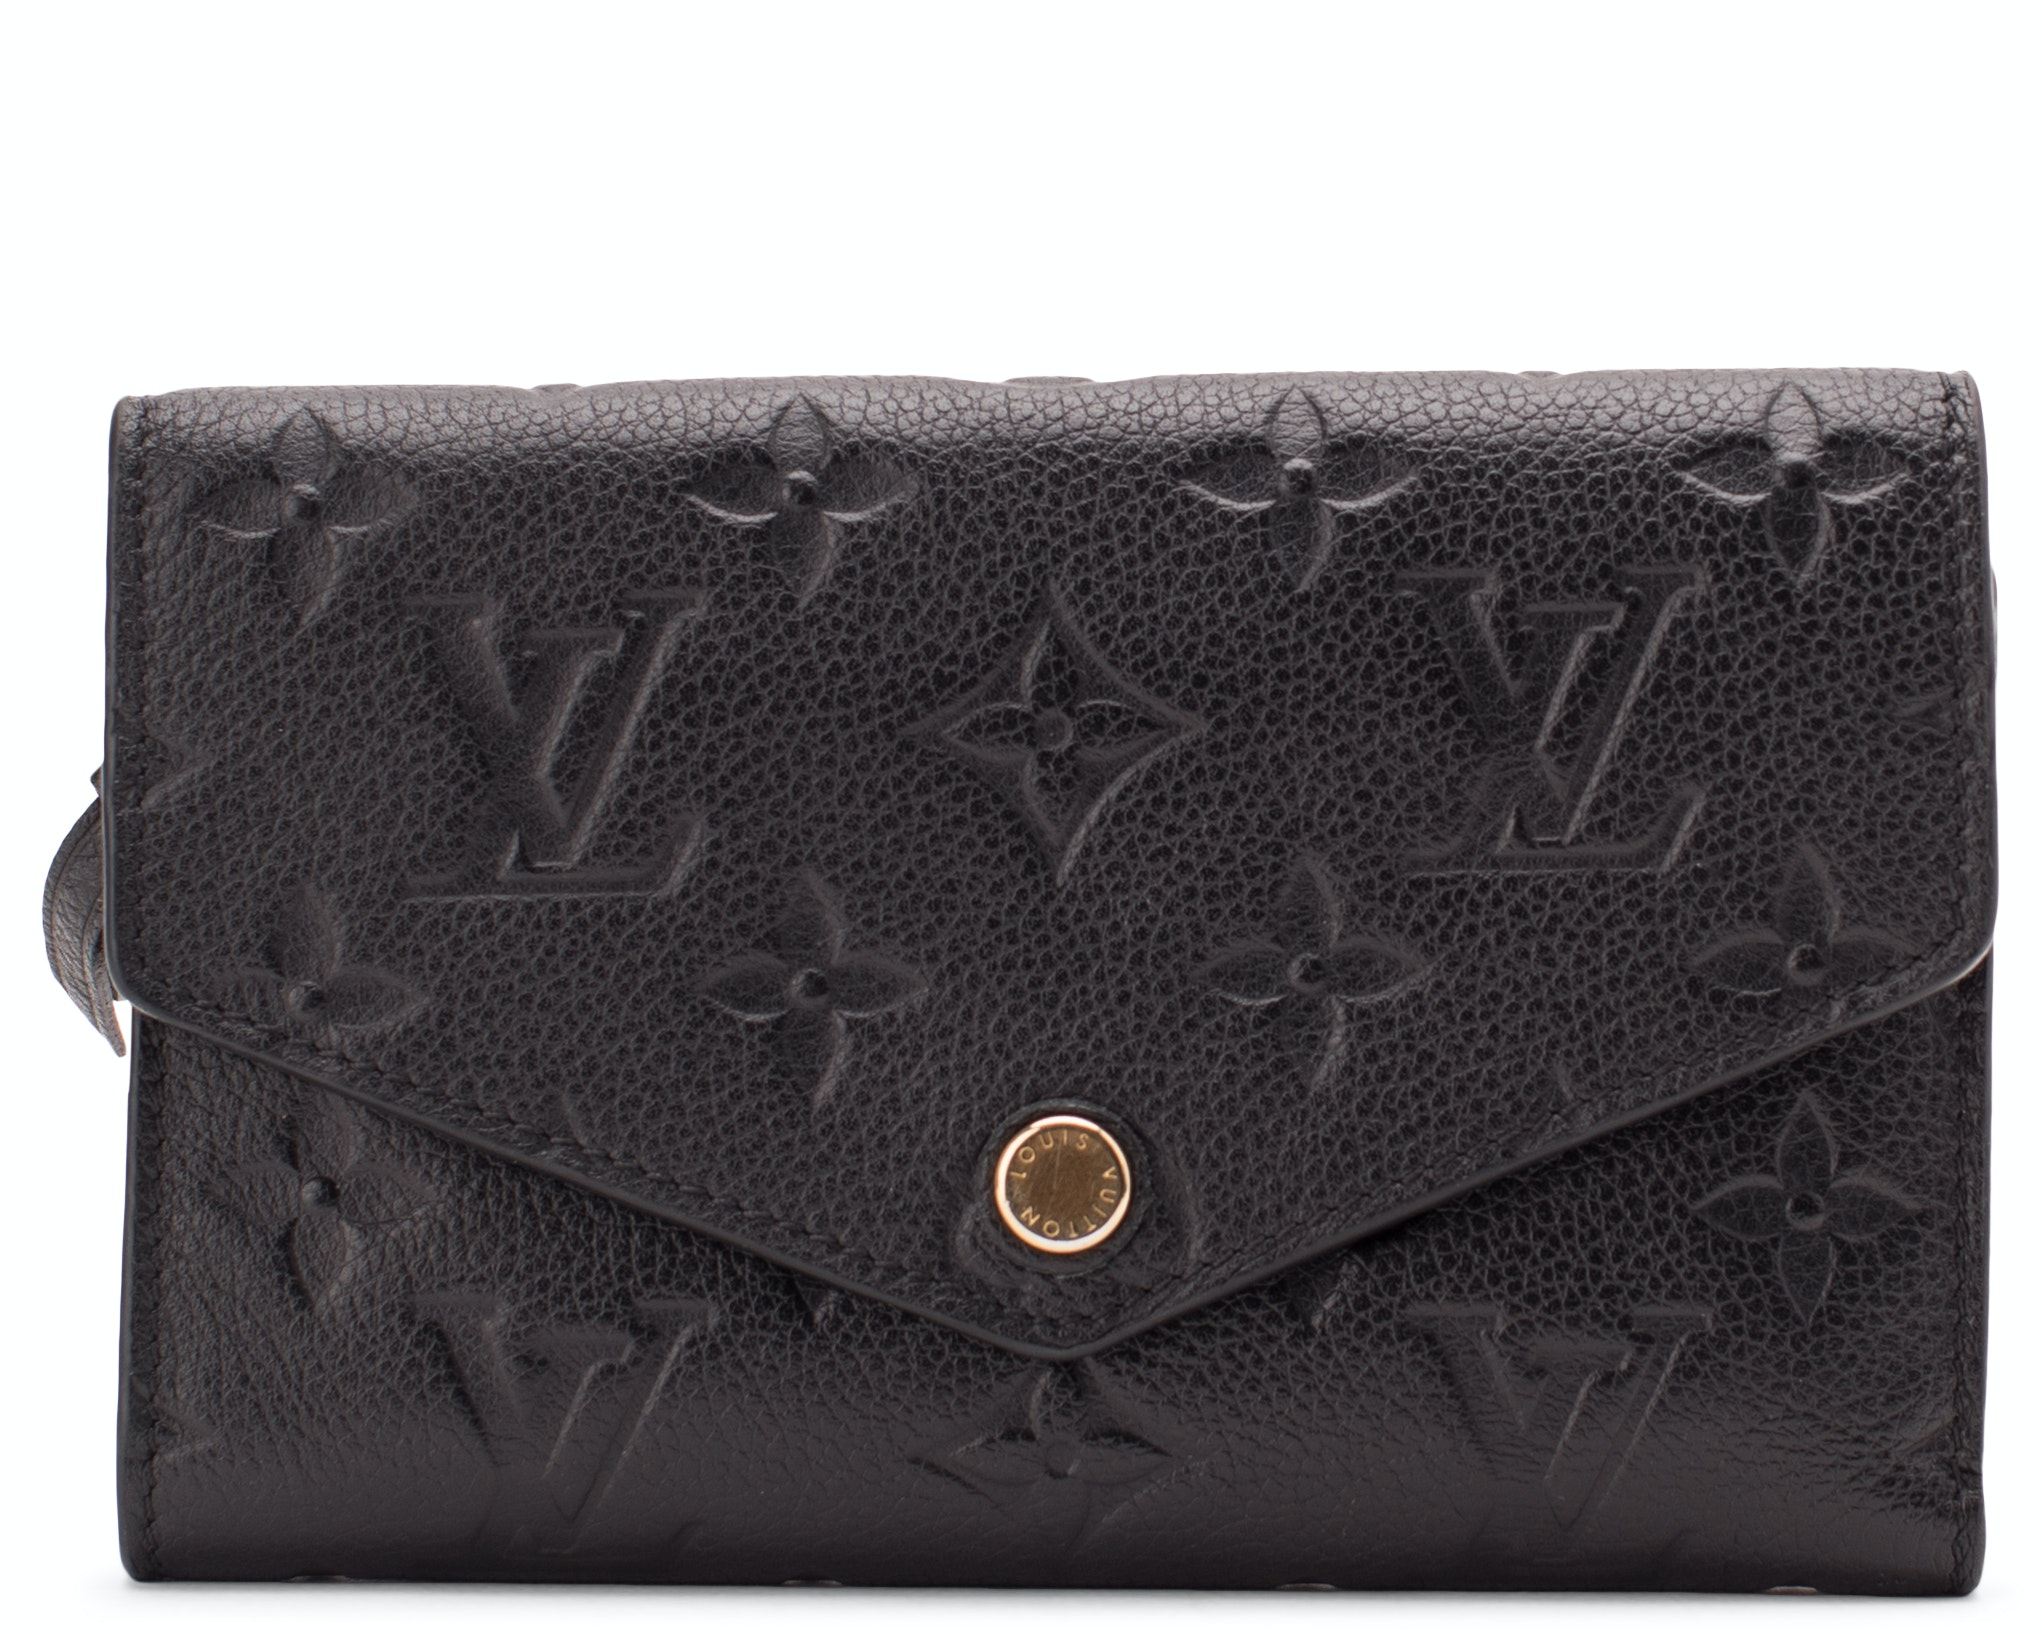 Louis Vuitton Wallet Compact Curieuse Monogram Empreinte